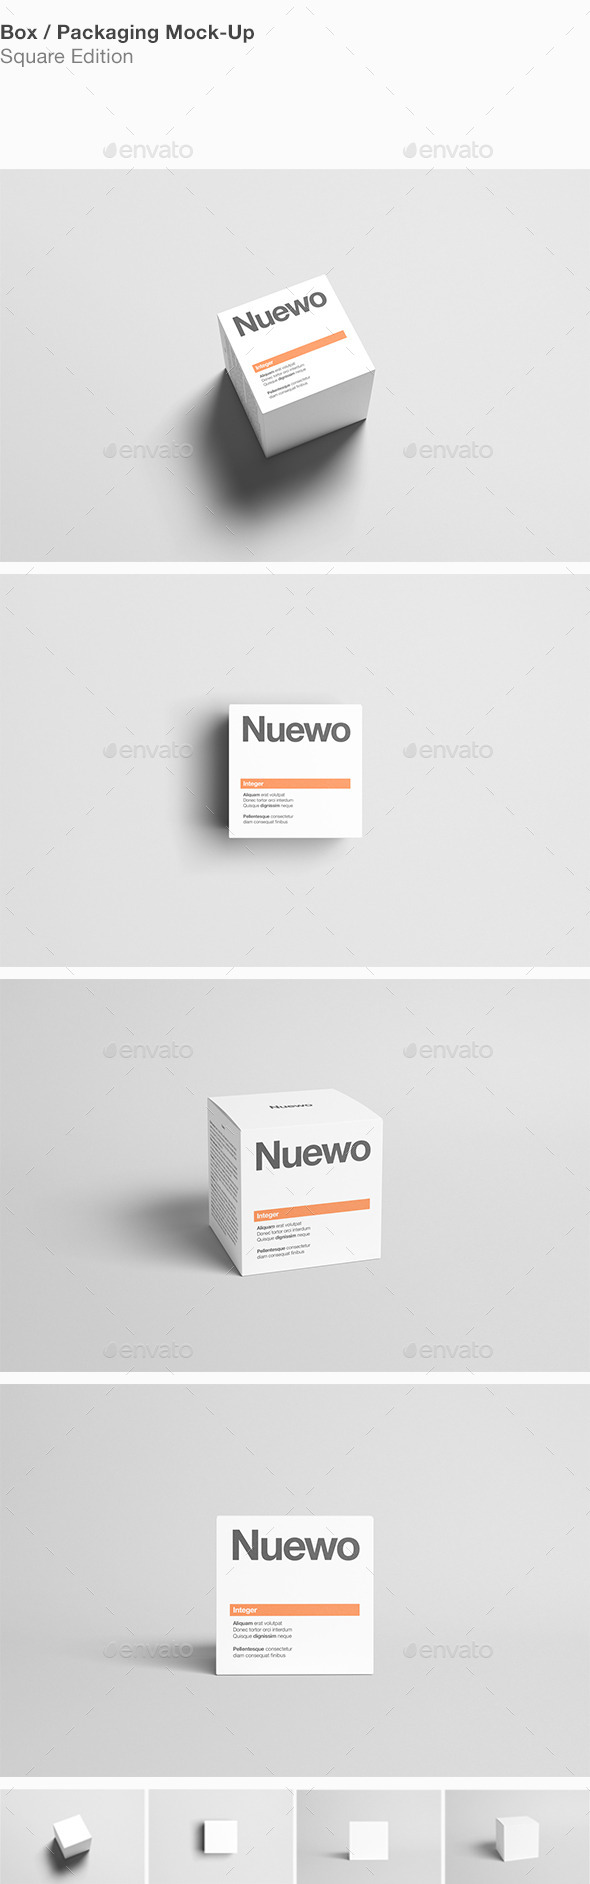 Box / Packaging Mock-Up - Square - Miscellaneous Packaging